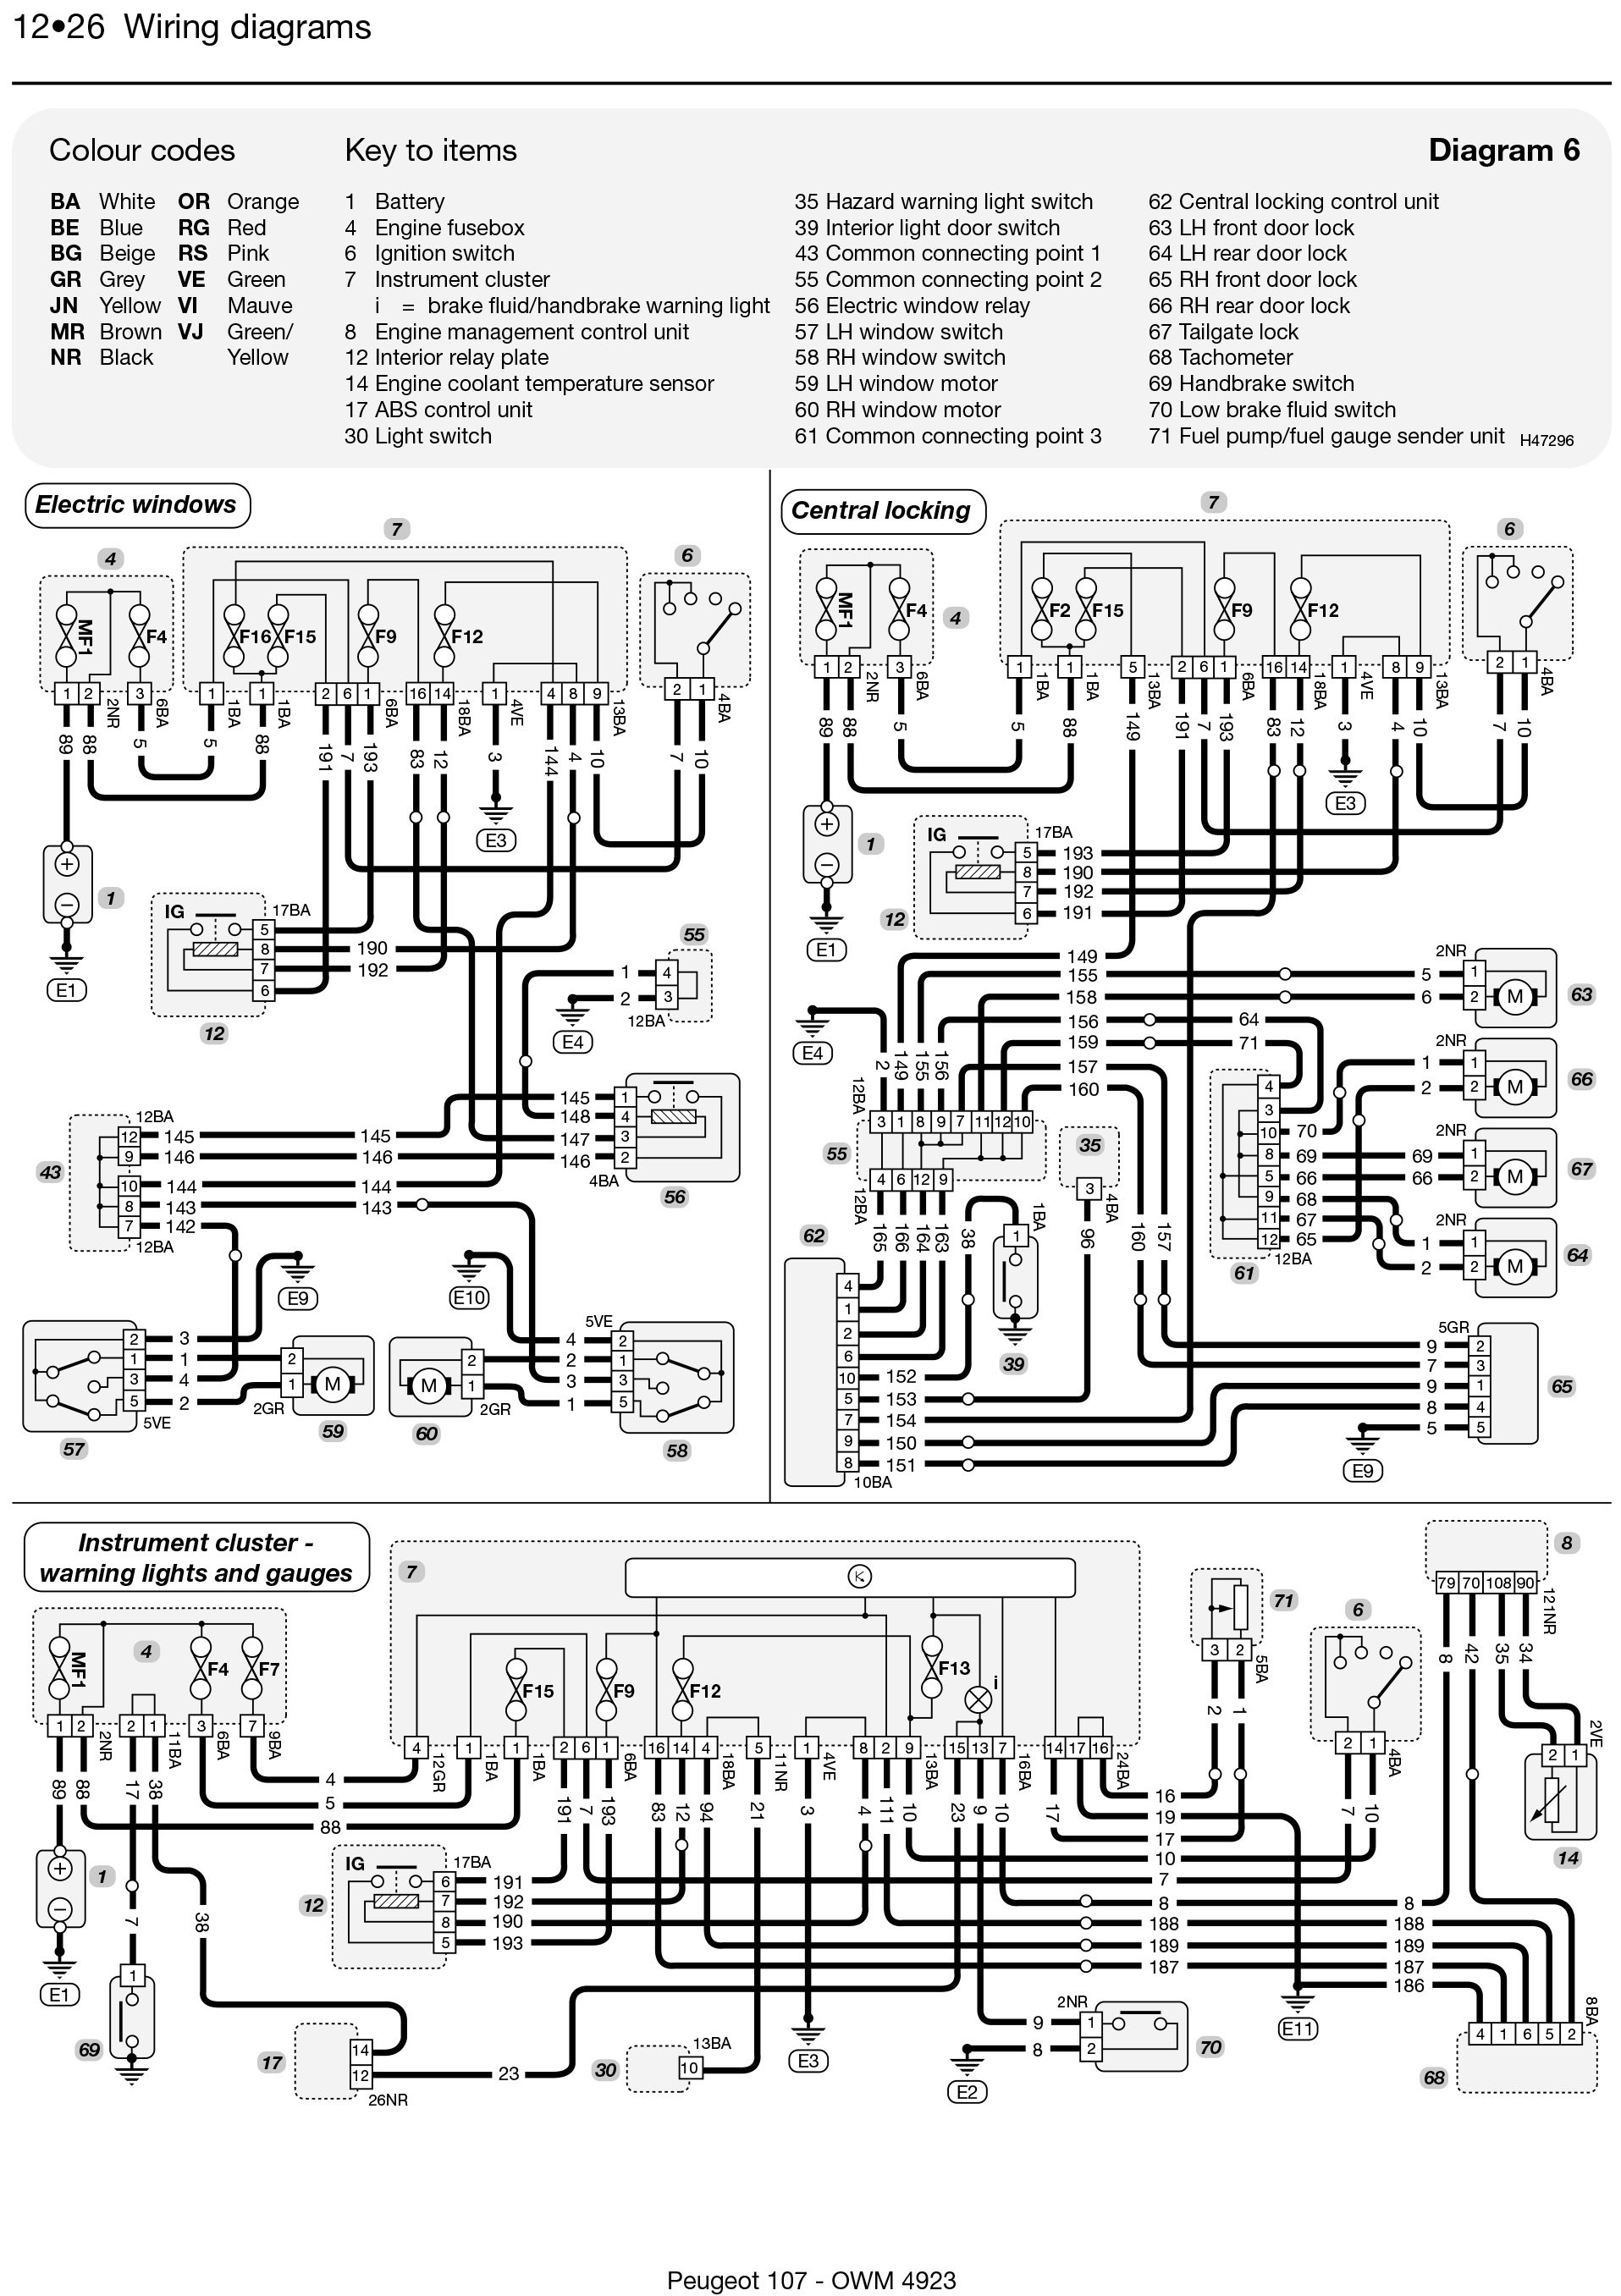 Peugeot 107 Wiring Diagram Car Diagrams Explained 605 Smart